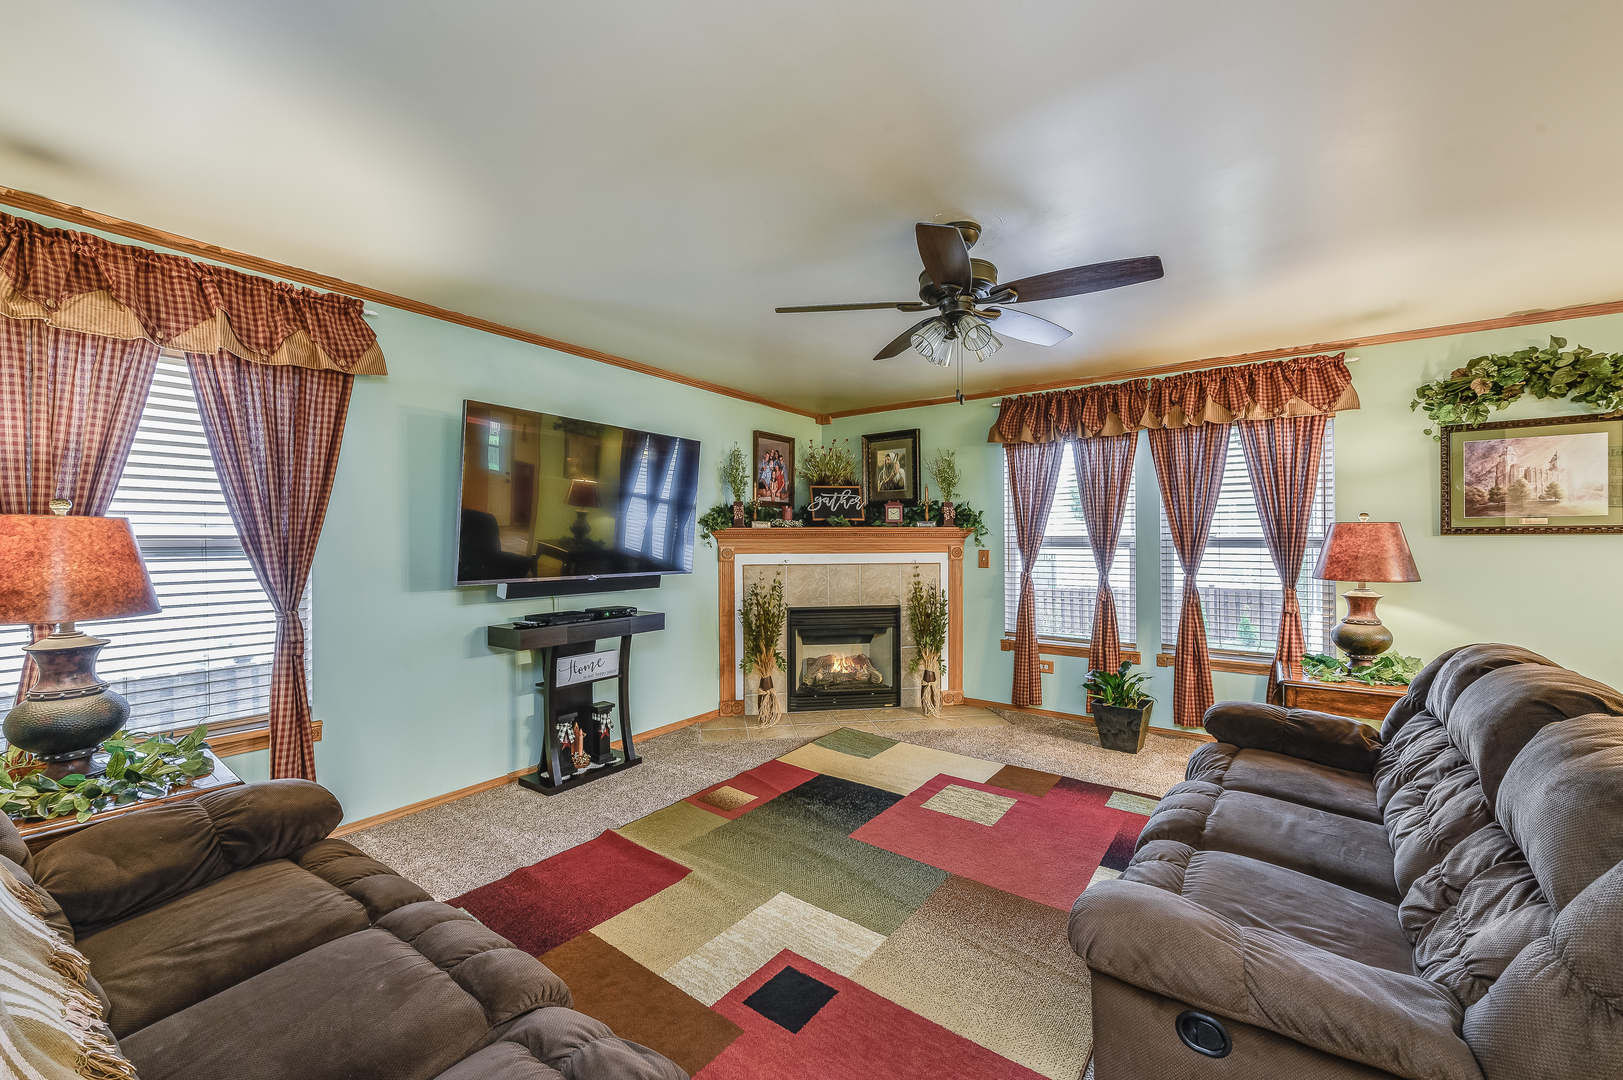 $269,900 - 4Br/4Ba -  for Sale in Fairfield Way, Montgomery